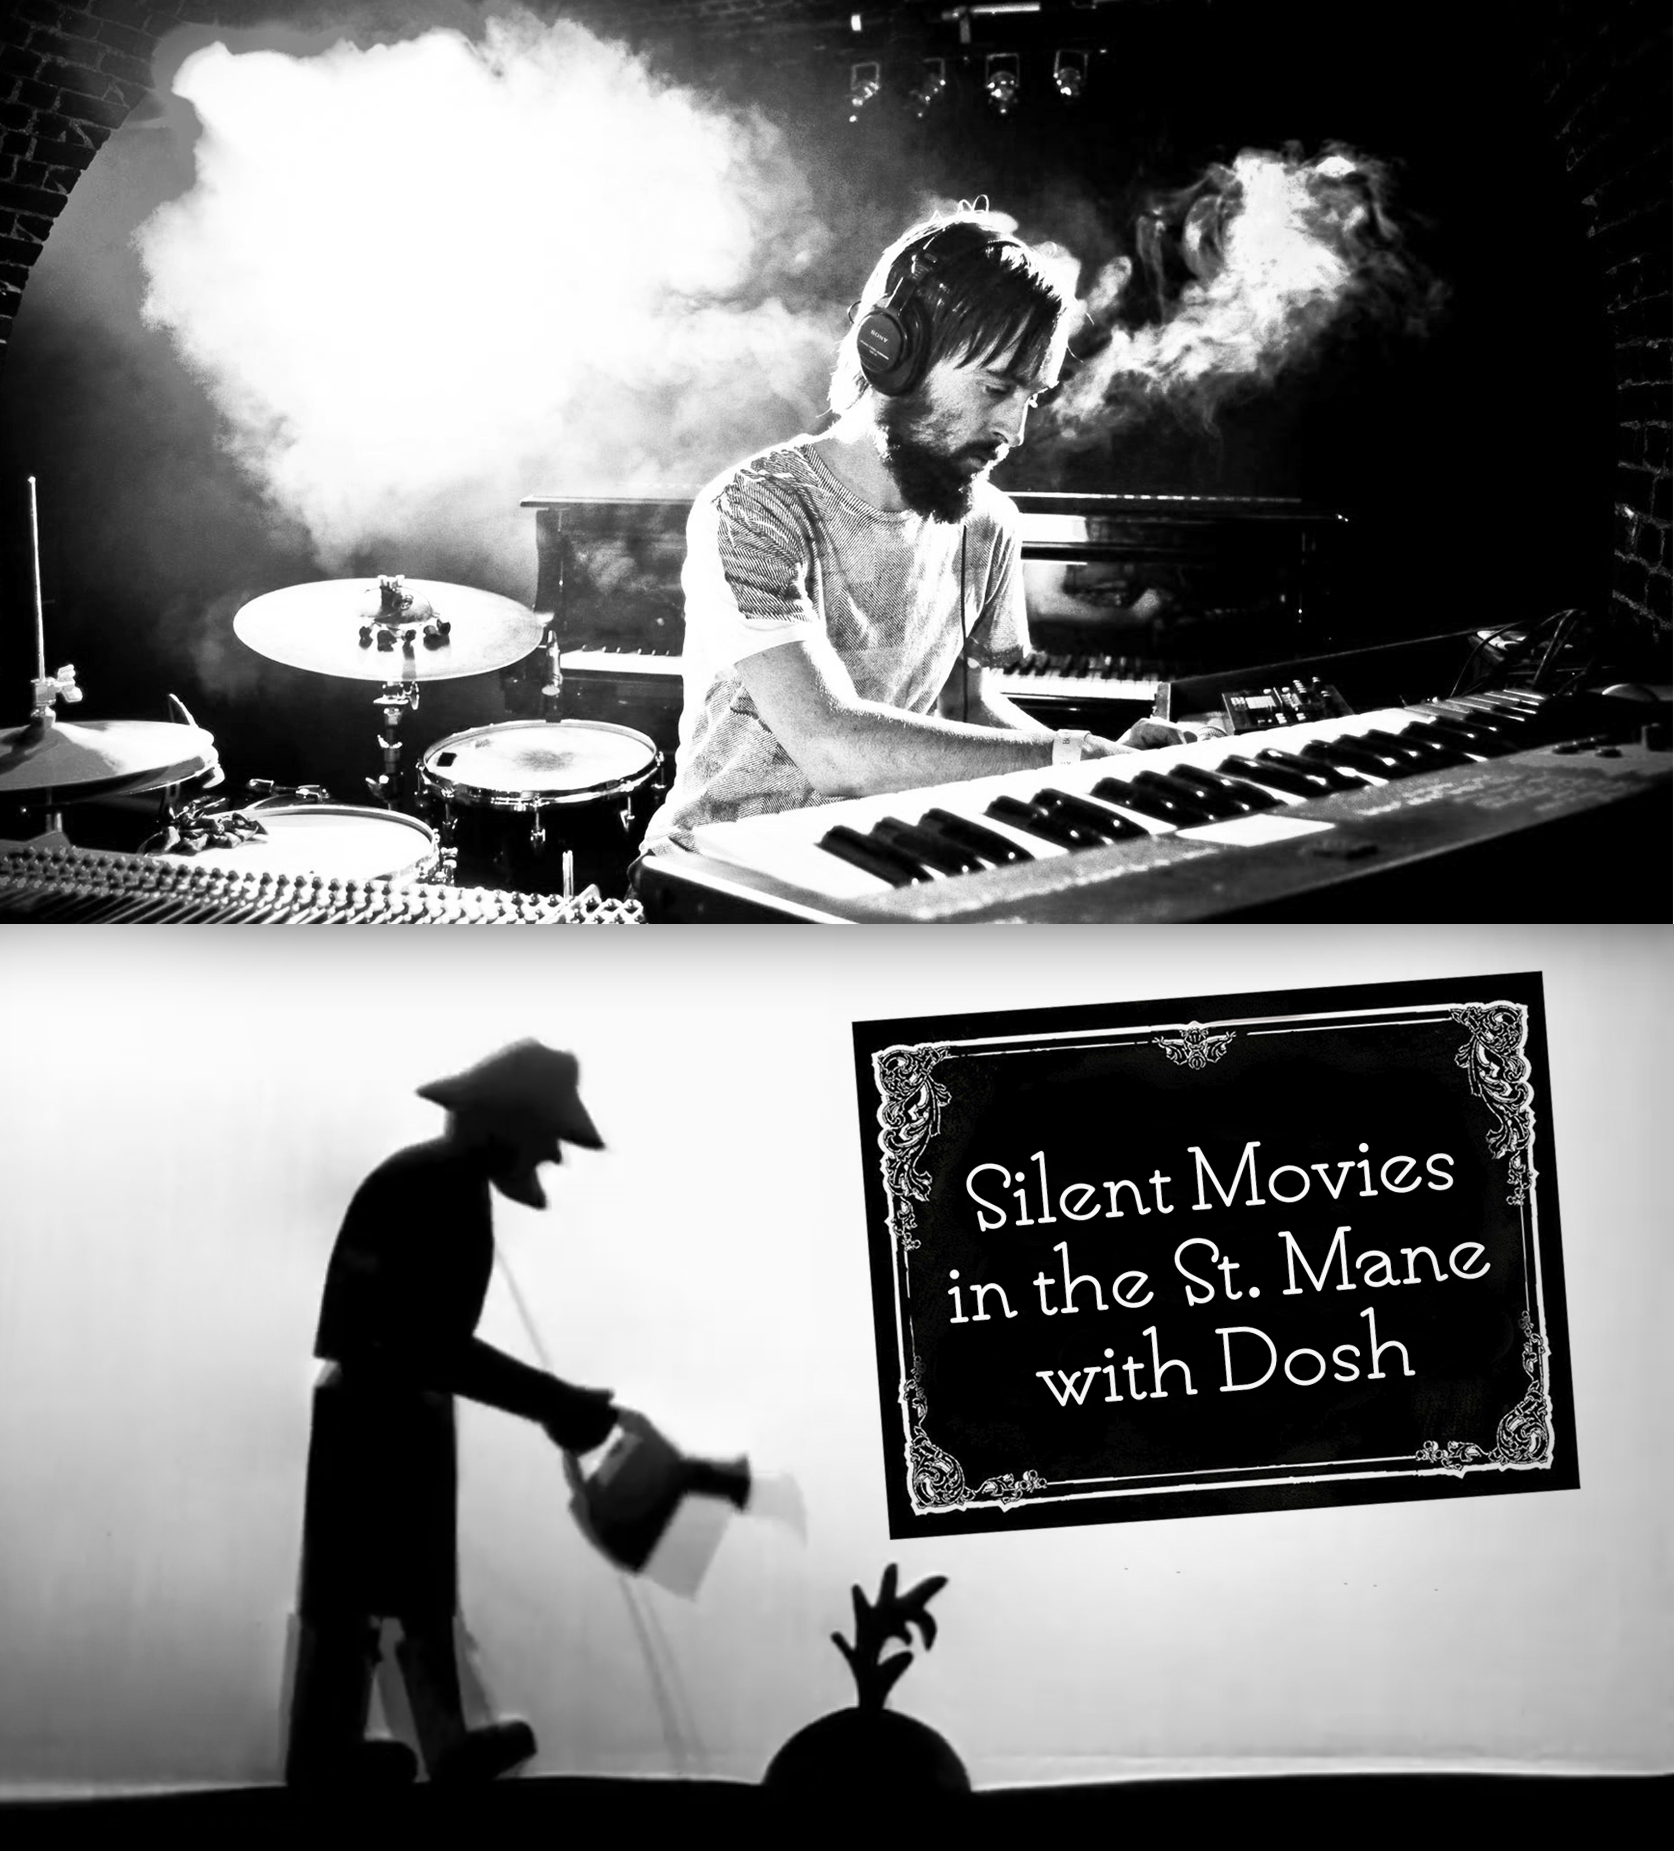 Silent Movies in the St. Mane with Dosh